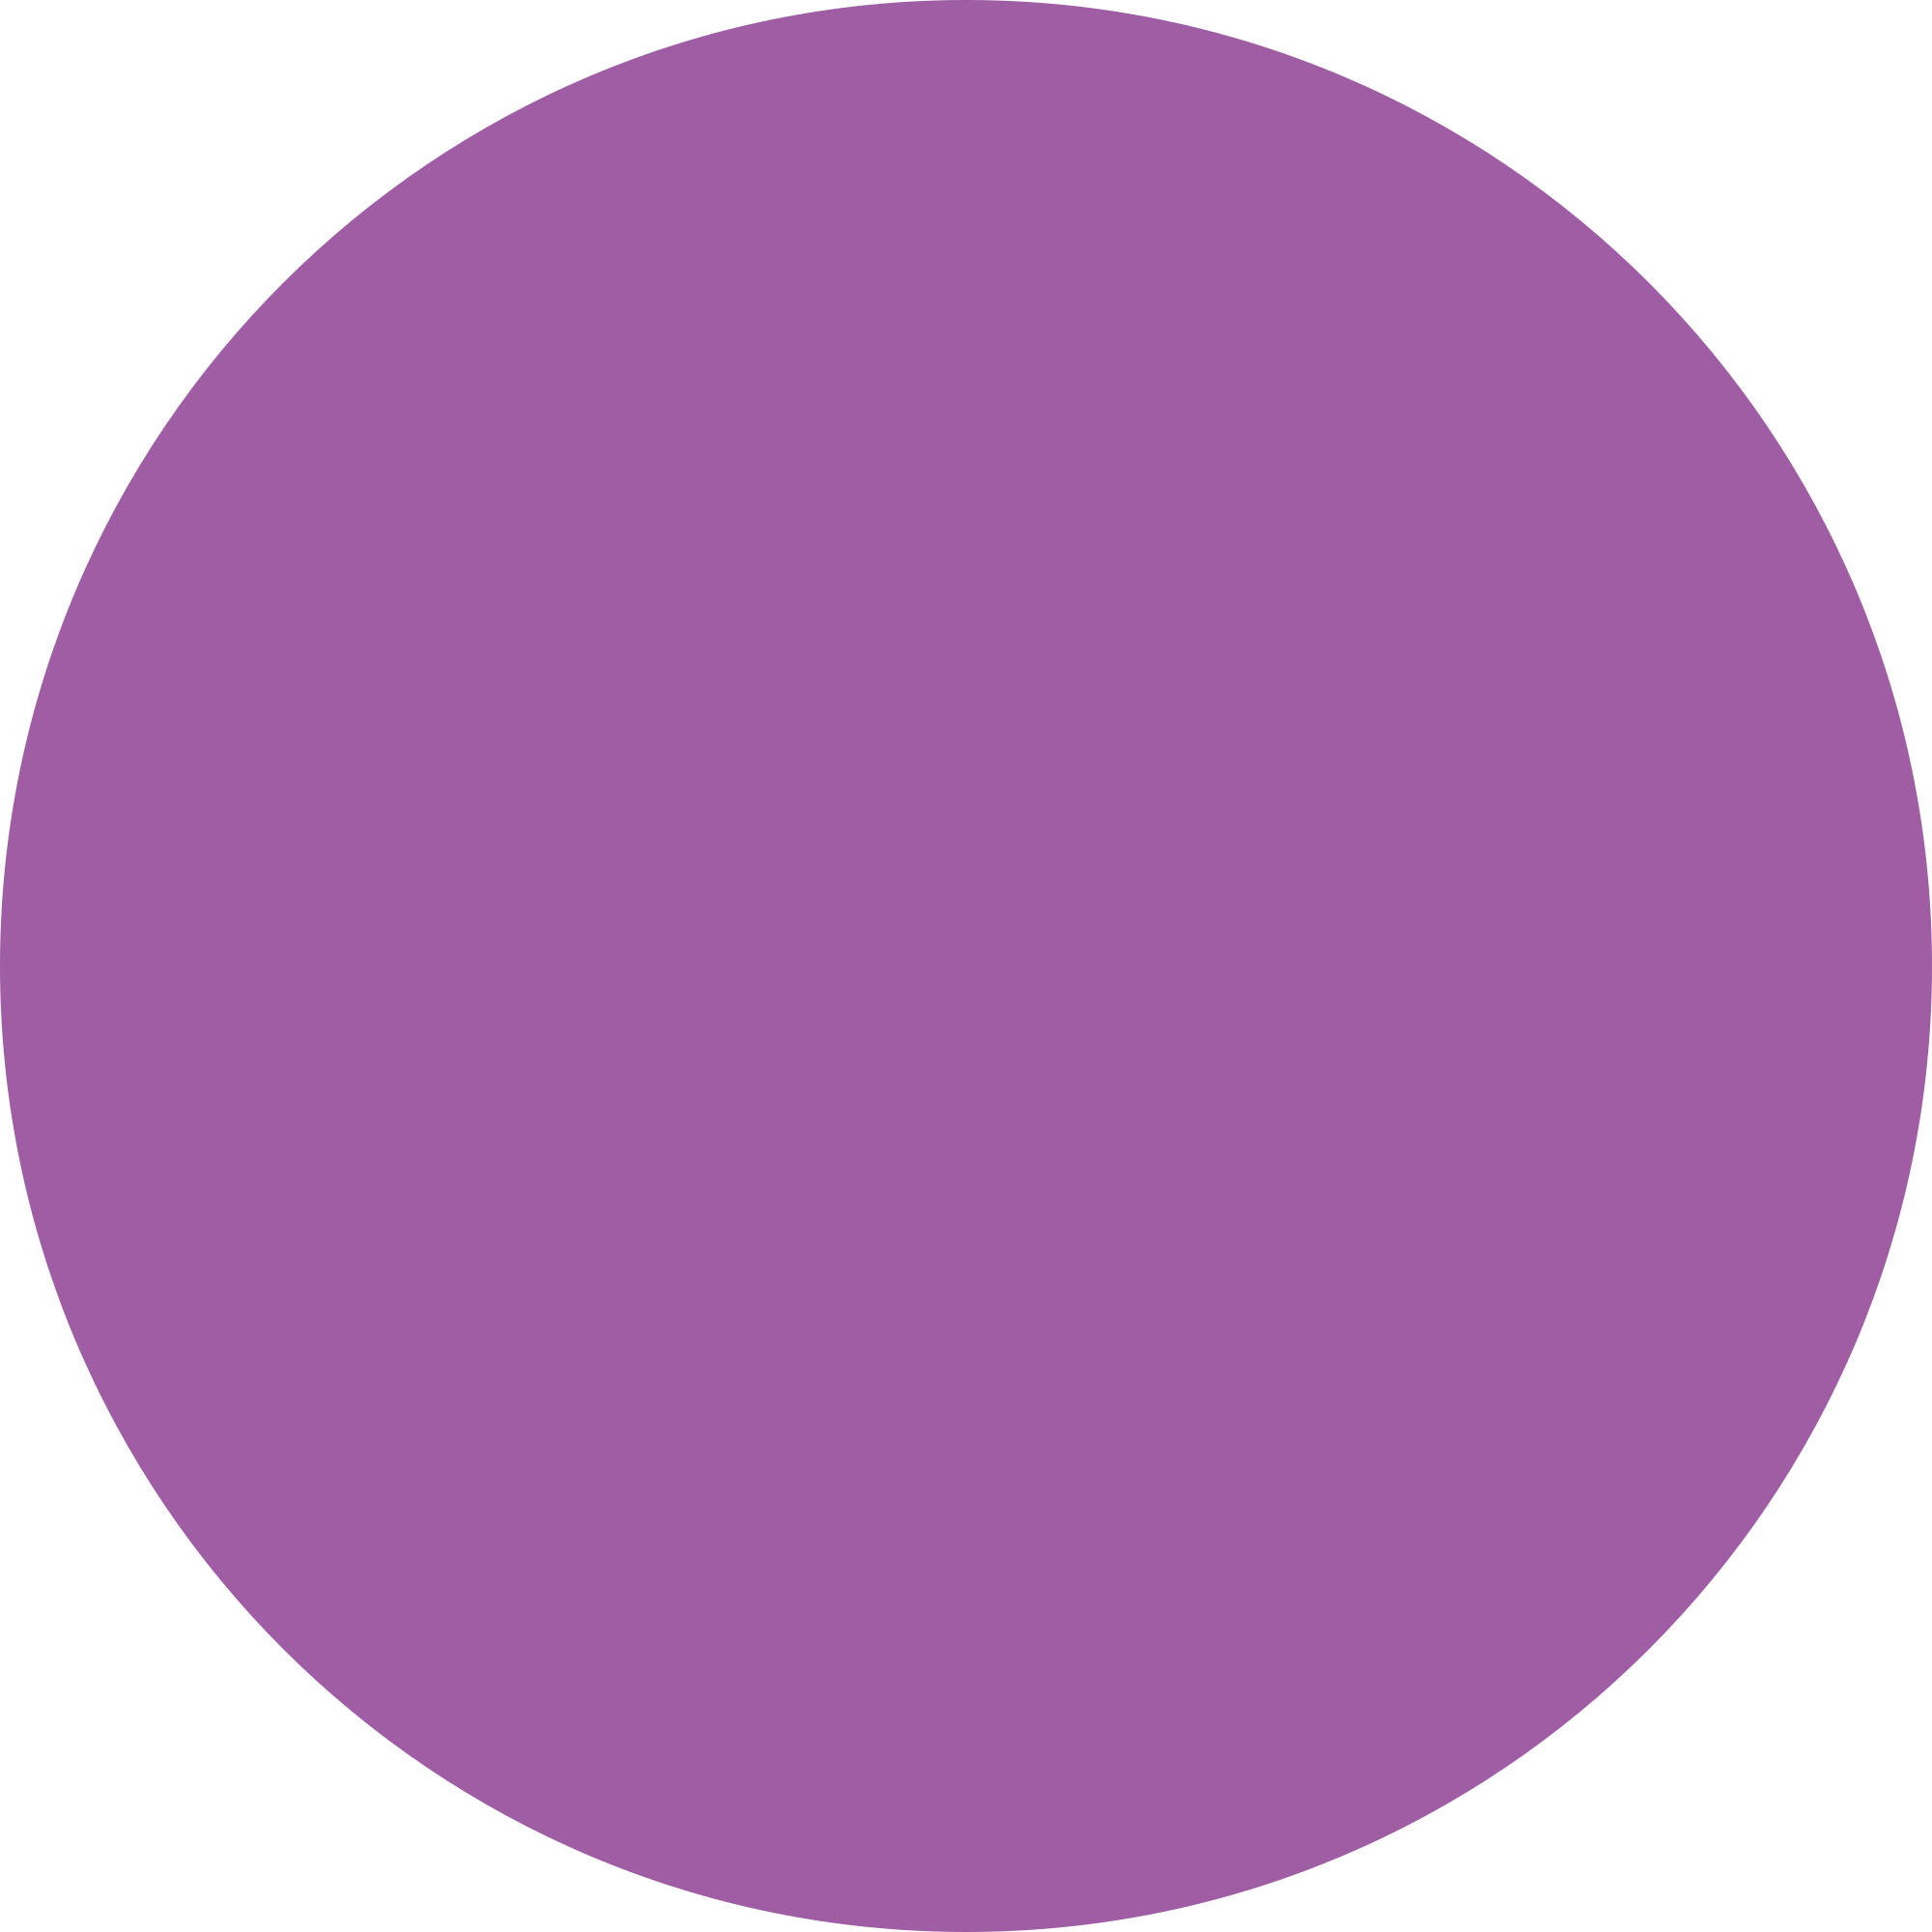 Circle clipart purple. File lacmta line svg